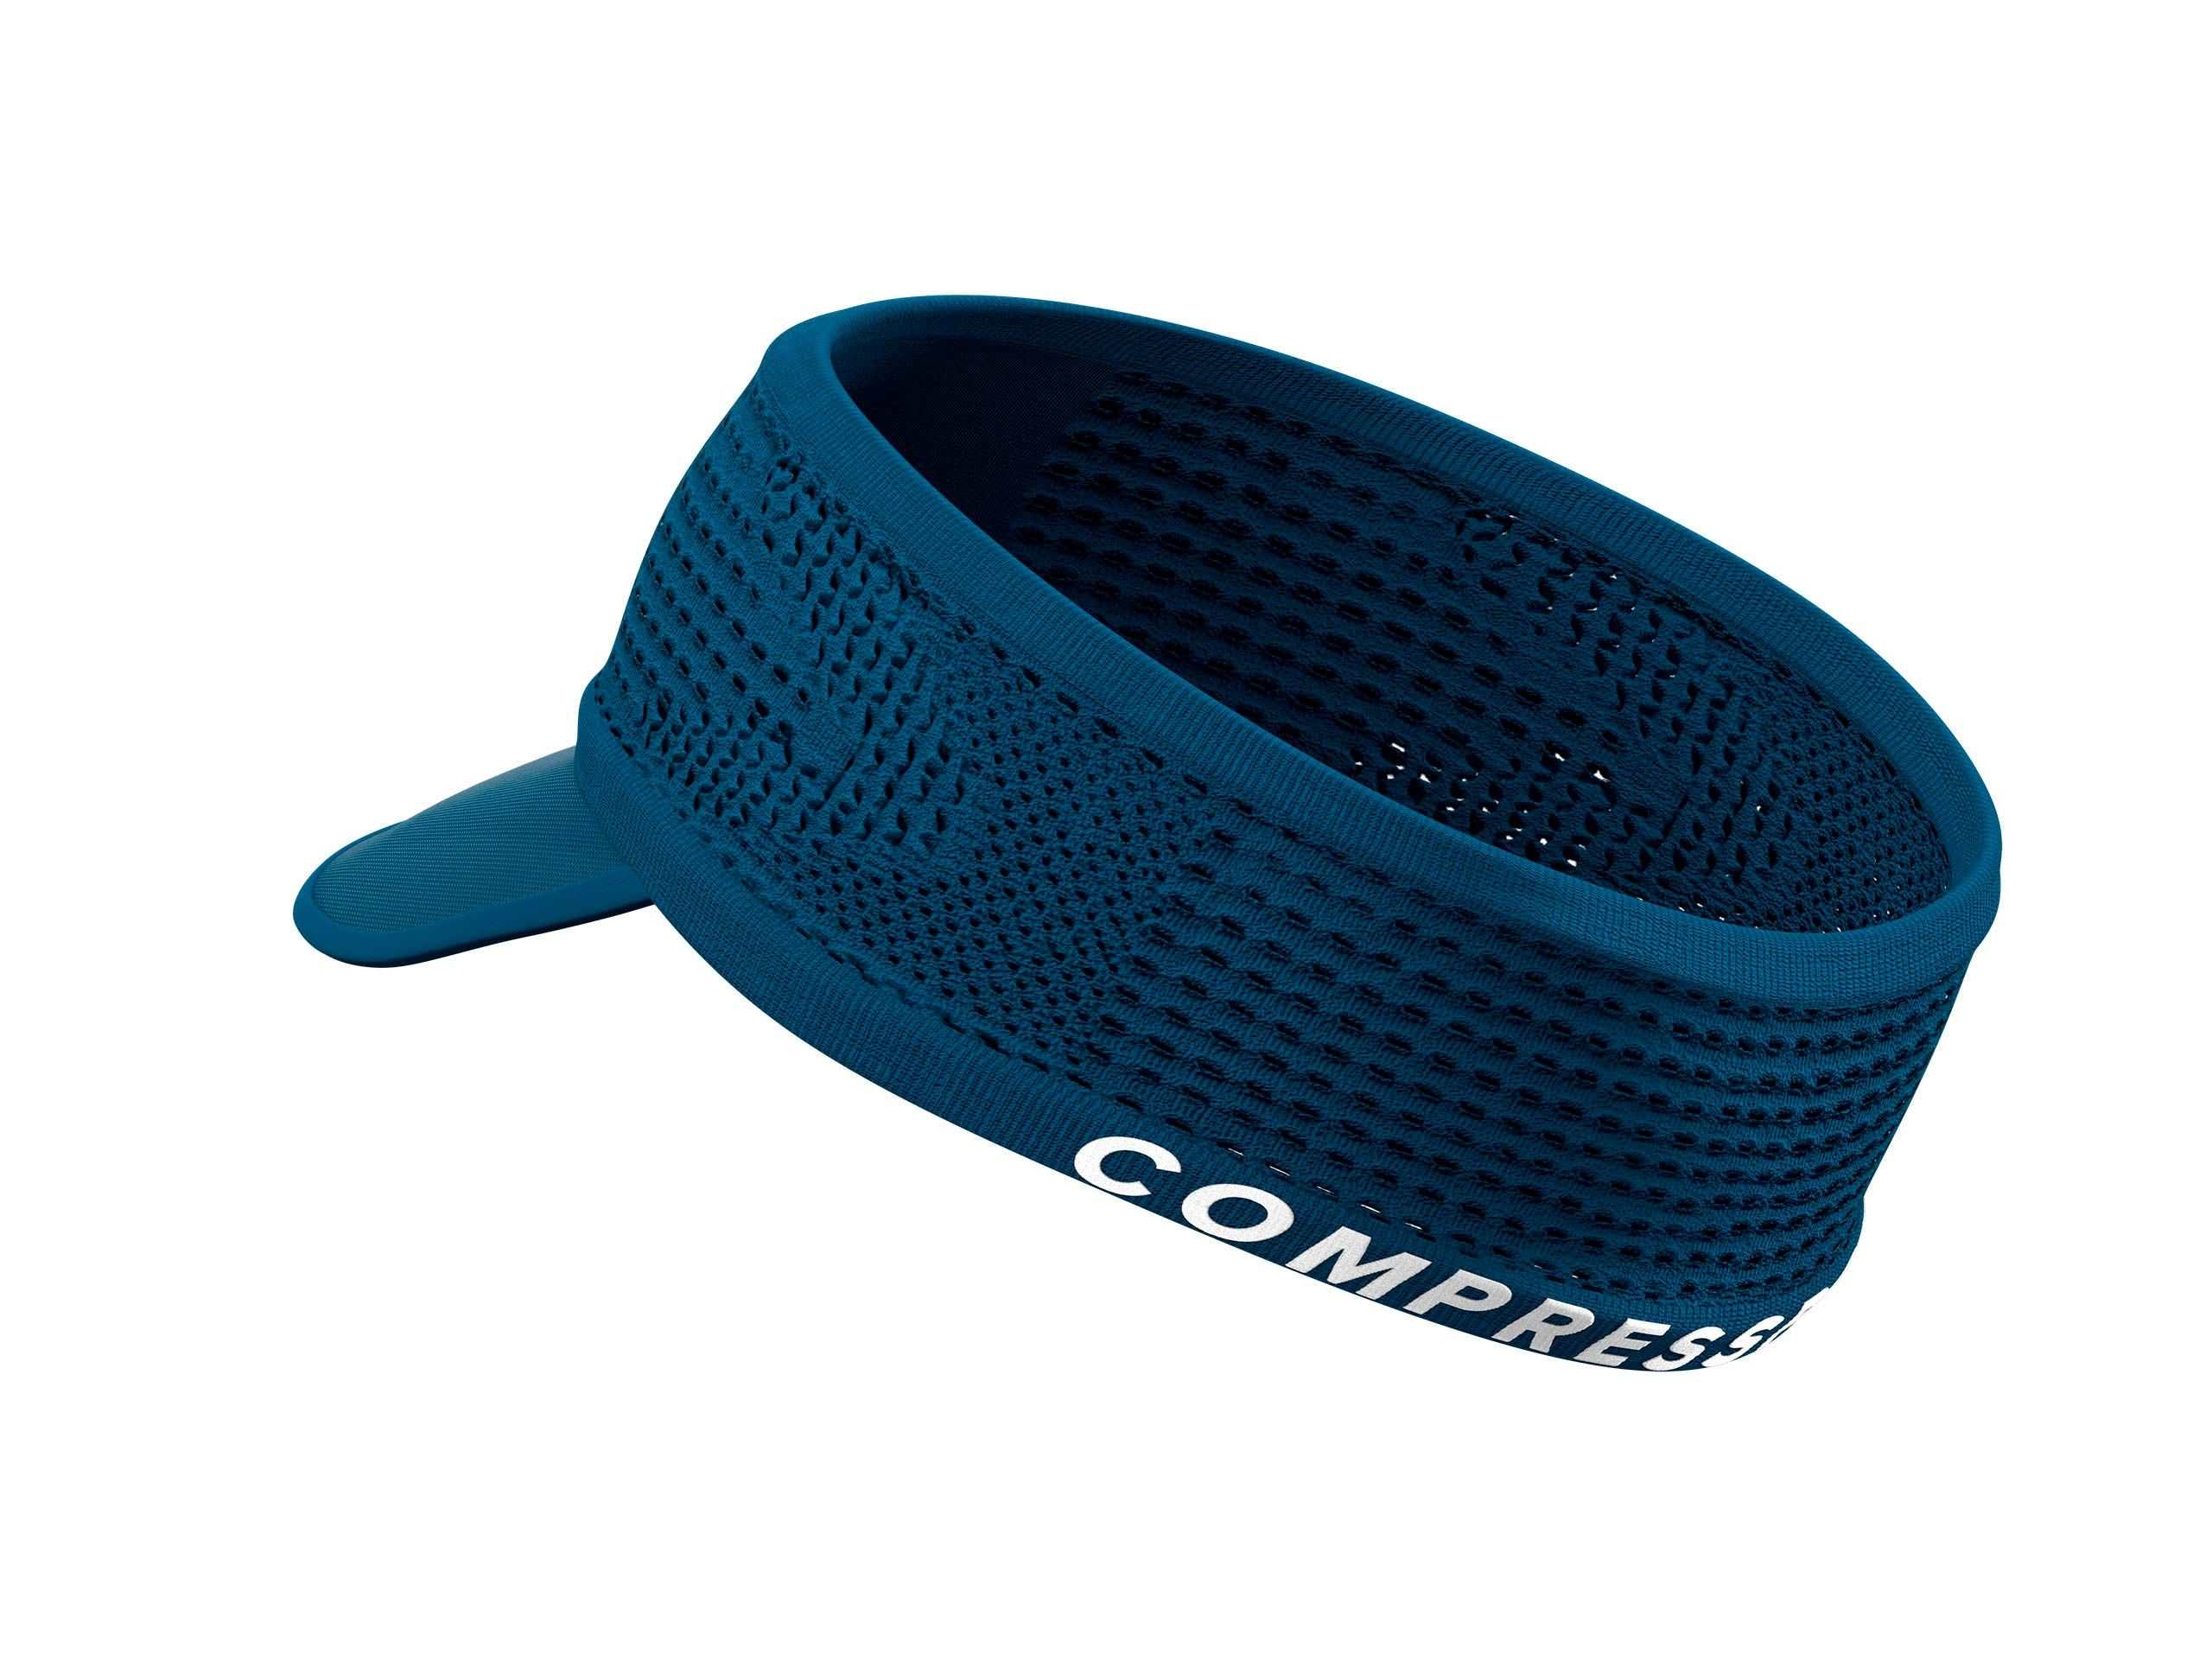 Spiderweb Headband On/Off - Blue Lolite